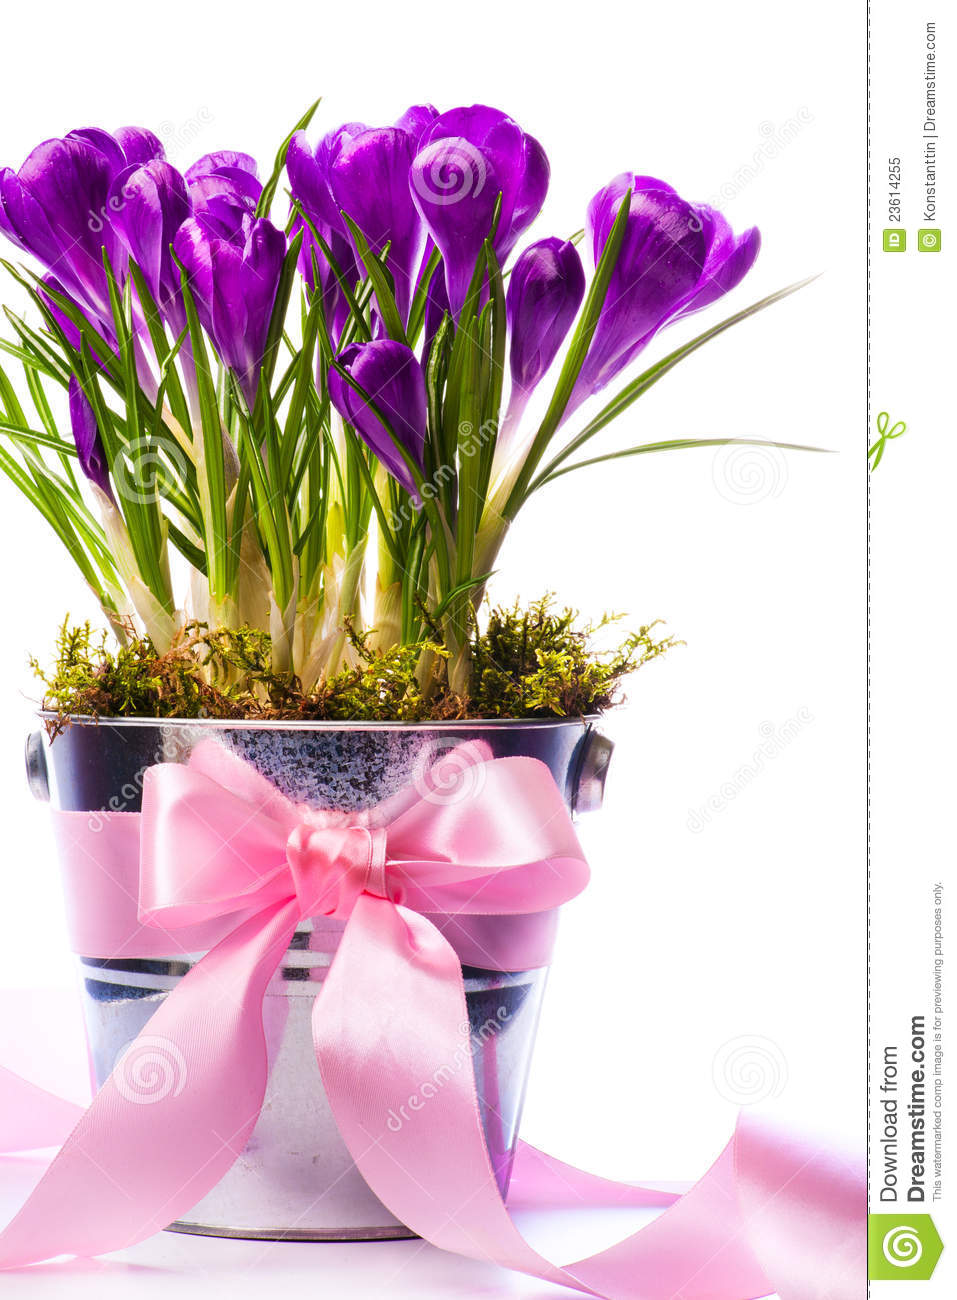 Art beautiful spring flowers royalty free stock photo image